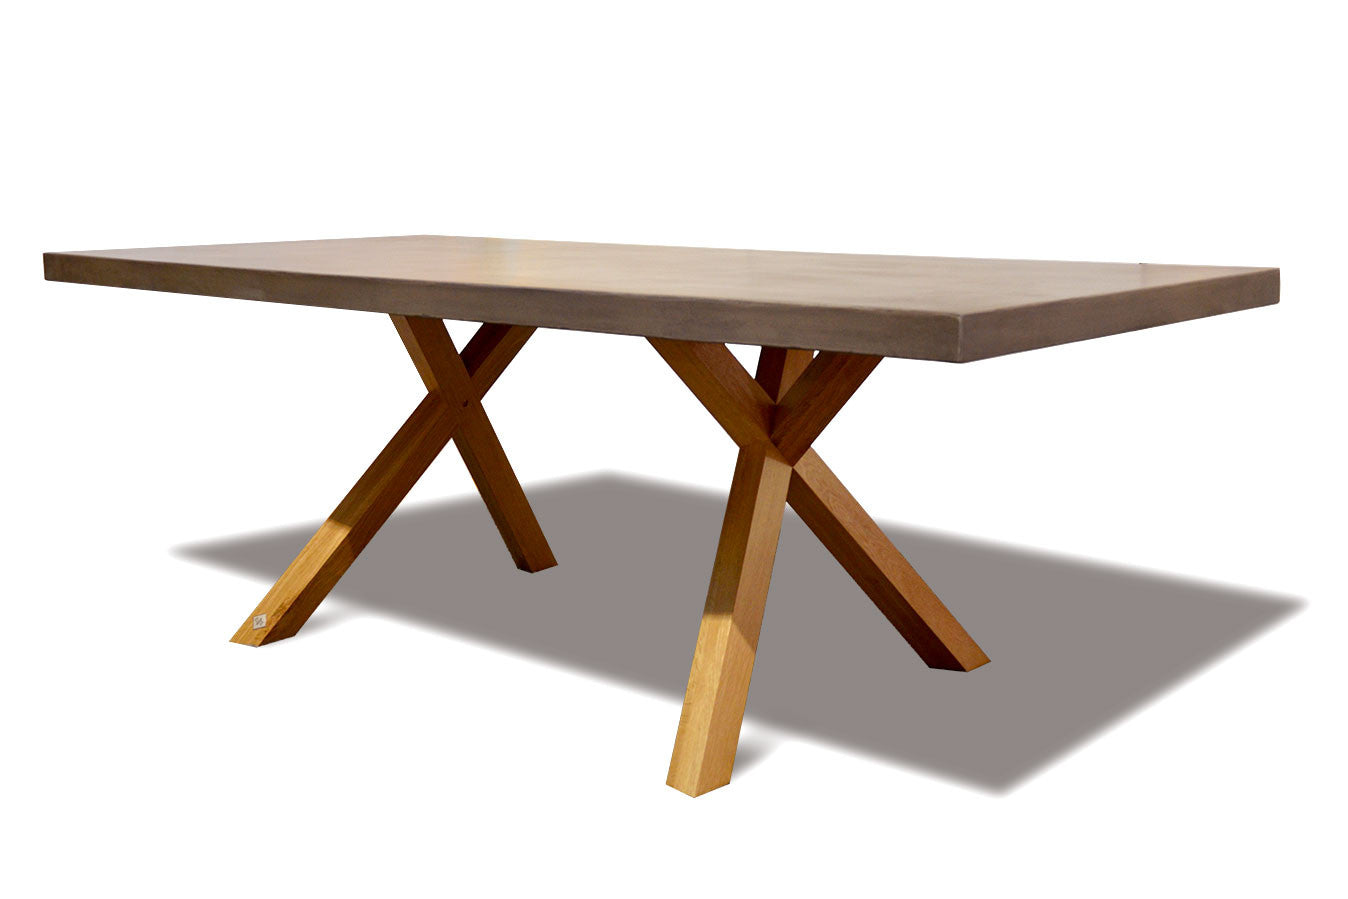 American Oak Dining Table American Oak Dining Table : Wichita American White Oak Dining Table Polished Concrete Top from www.hargapass.com size 1348 x 899 jpeg 51kB